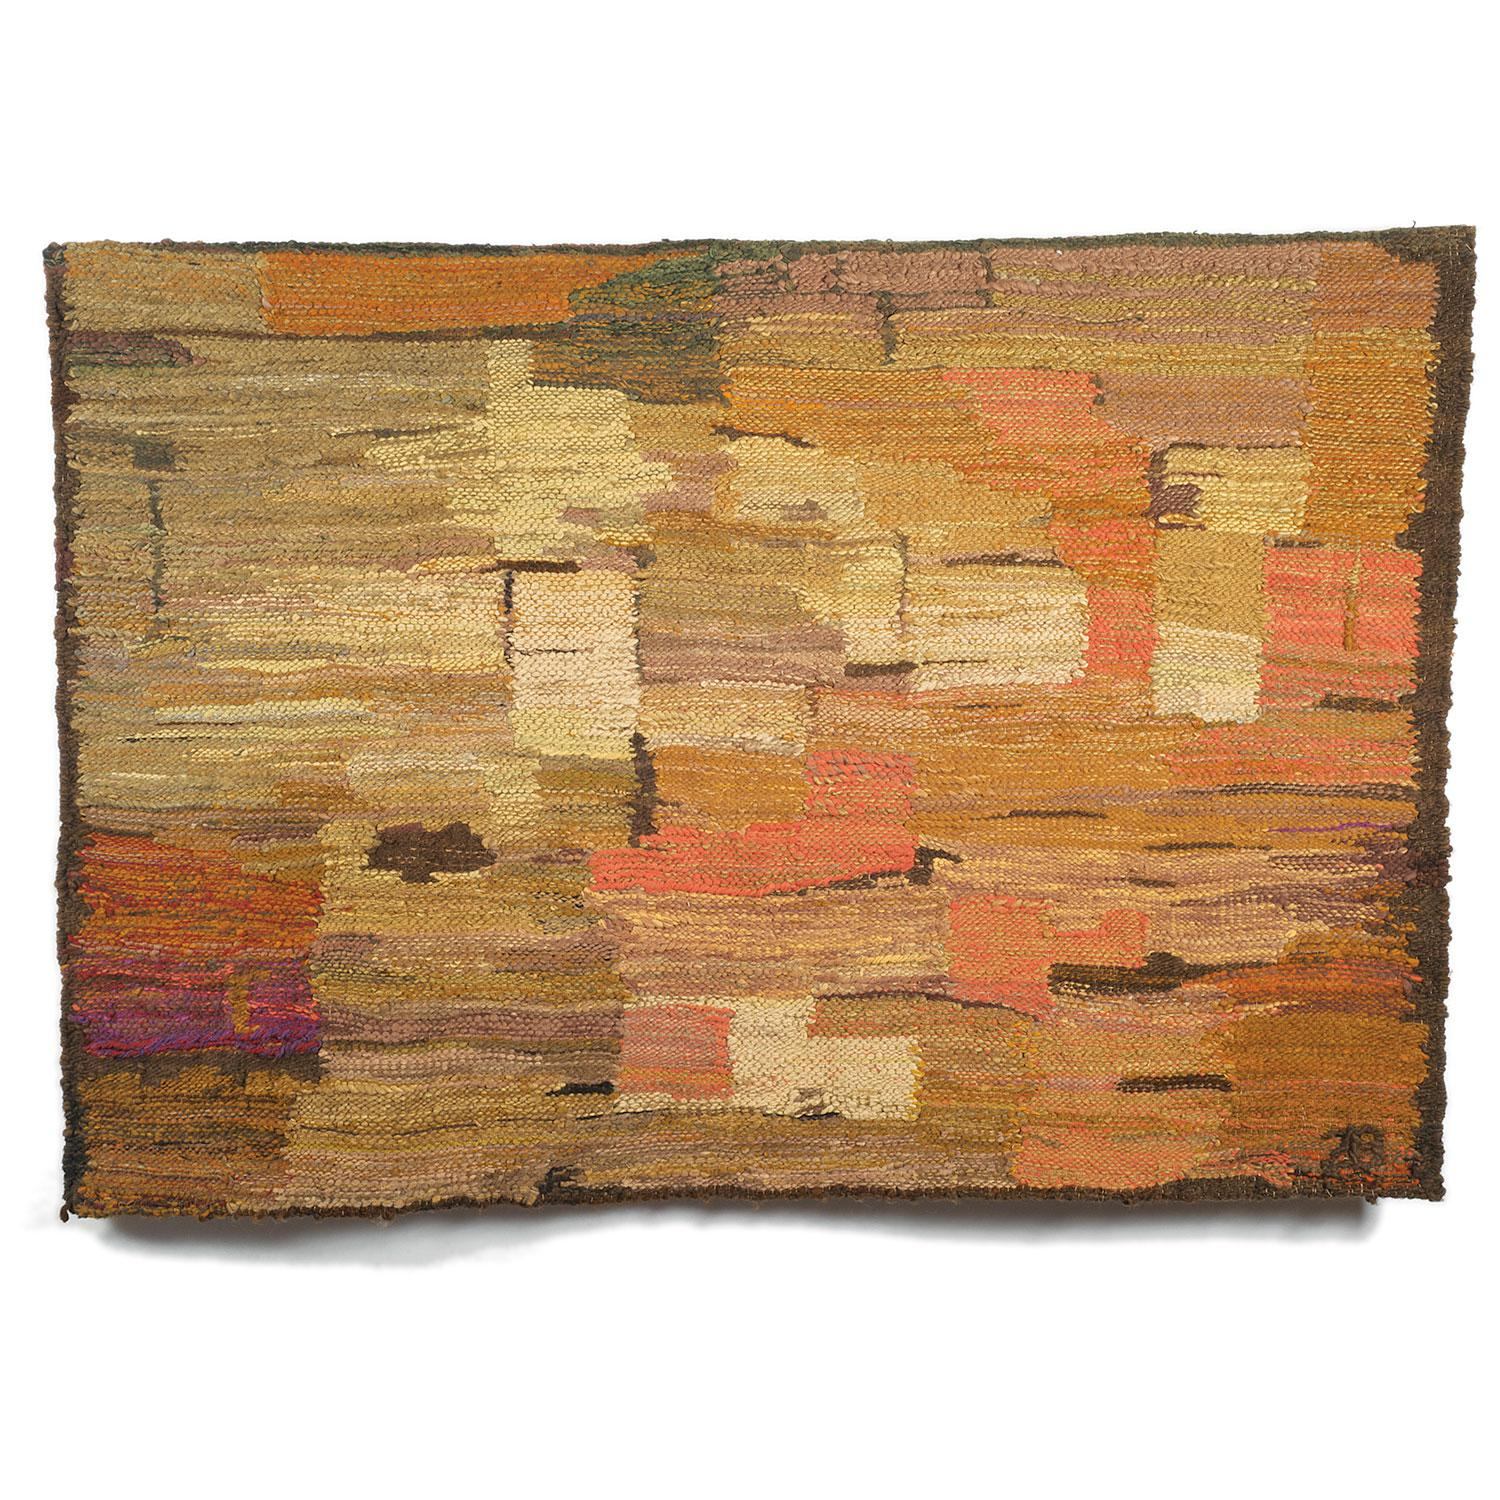 Rocks, Post-Modern Abstract Landscape Woven Tapestry, Textile Sculpture